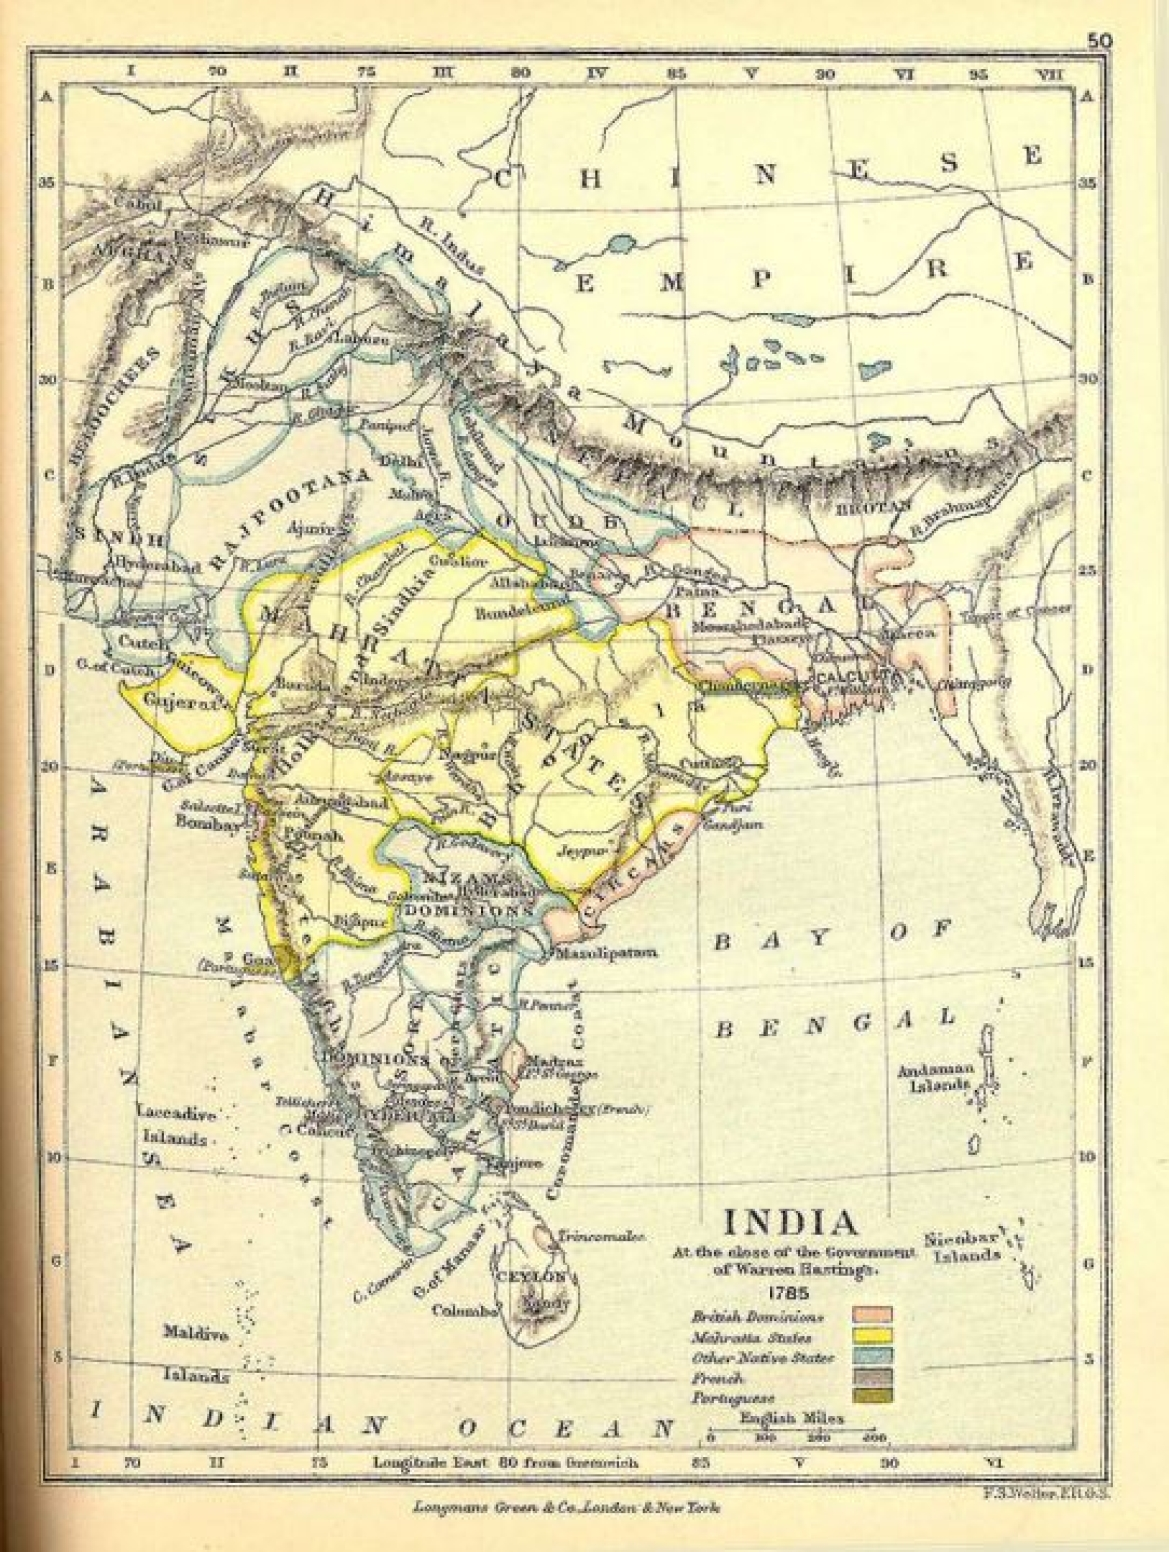 India during Hickey's time, 1795, British territories (red) and Maratha territories (yellow)